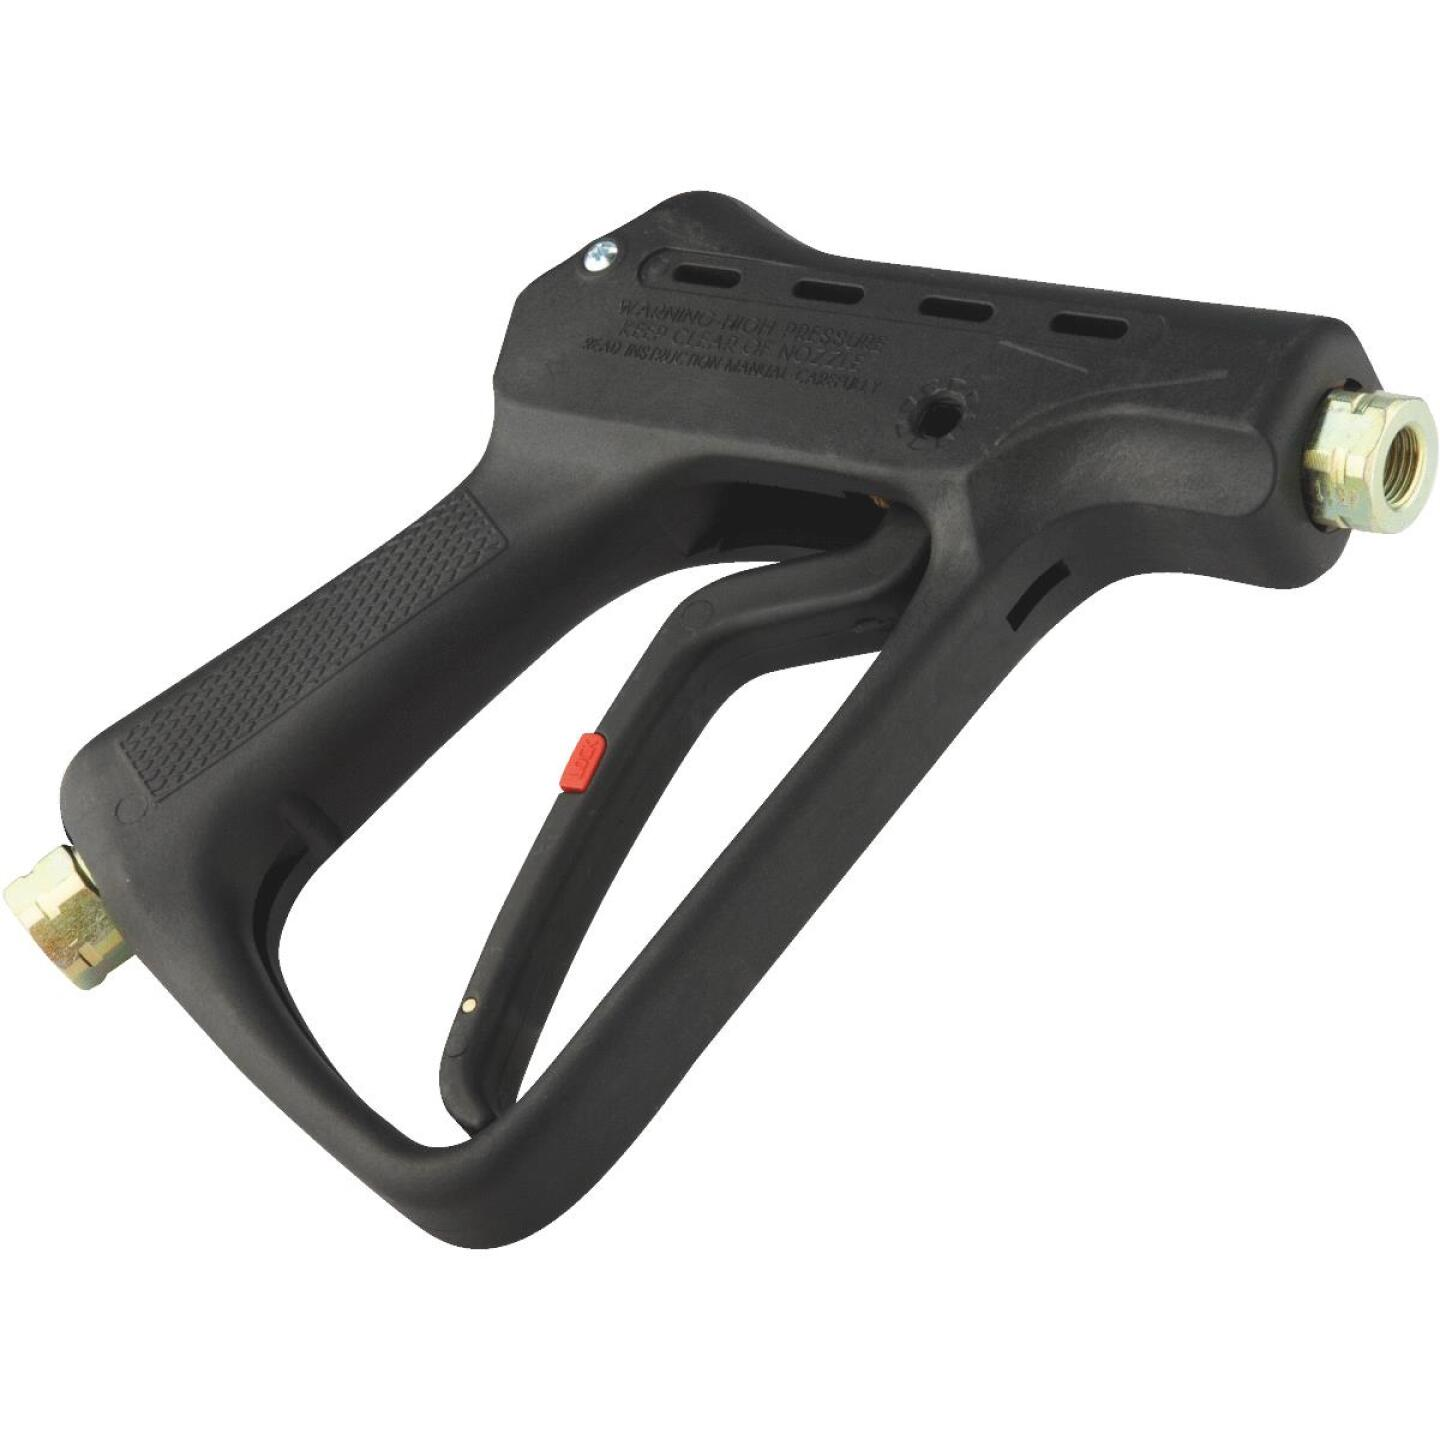 Mi-T-M Pressure Washer Trigger Gun Replacement Image 1